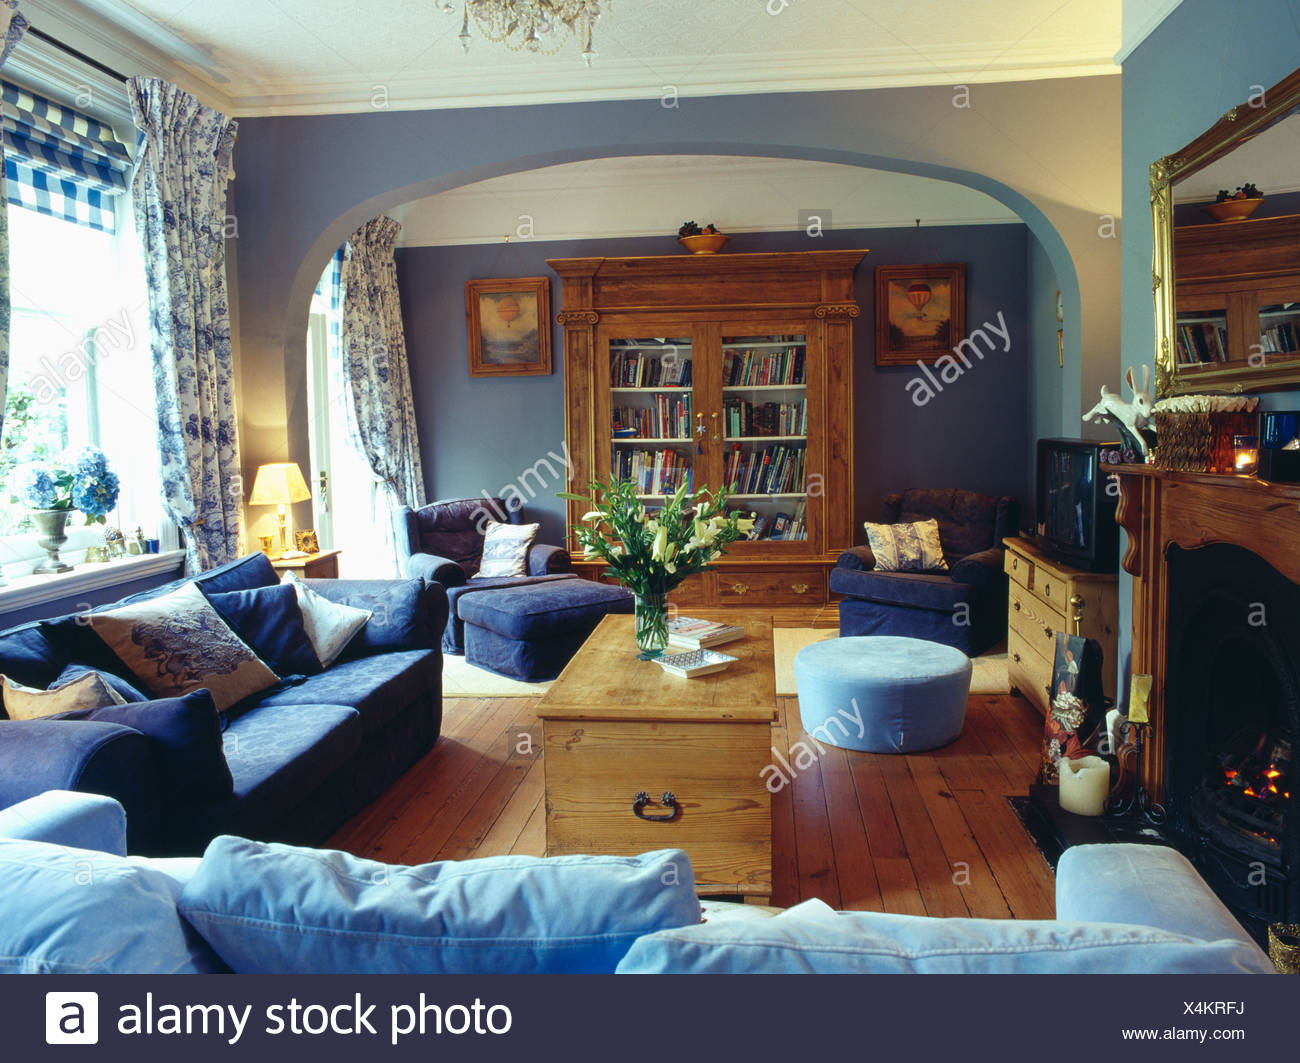 Pale blue and dark blue sofas and pine chest in pale blue living ...